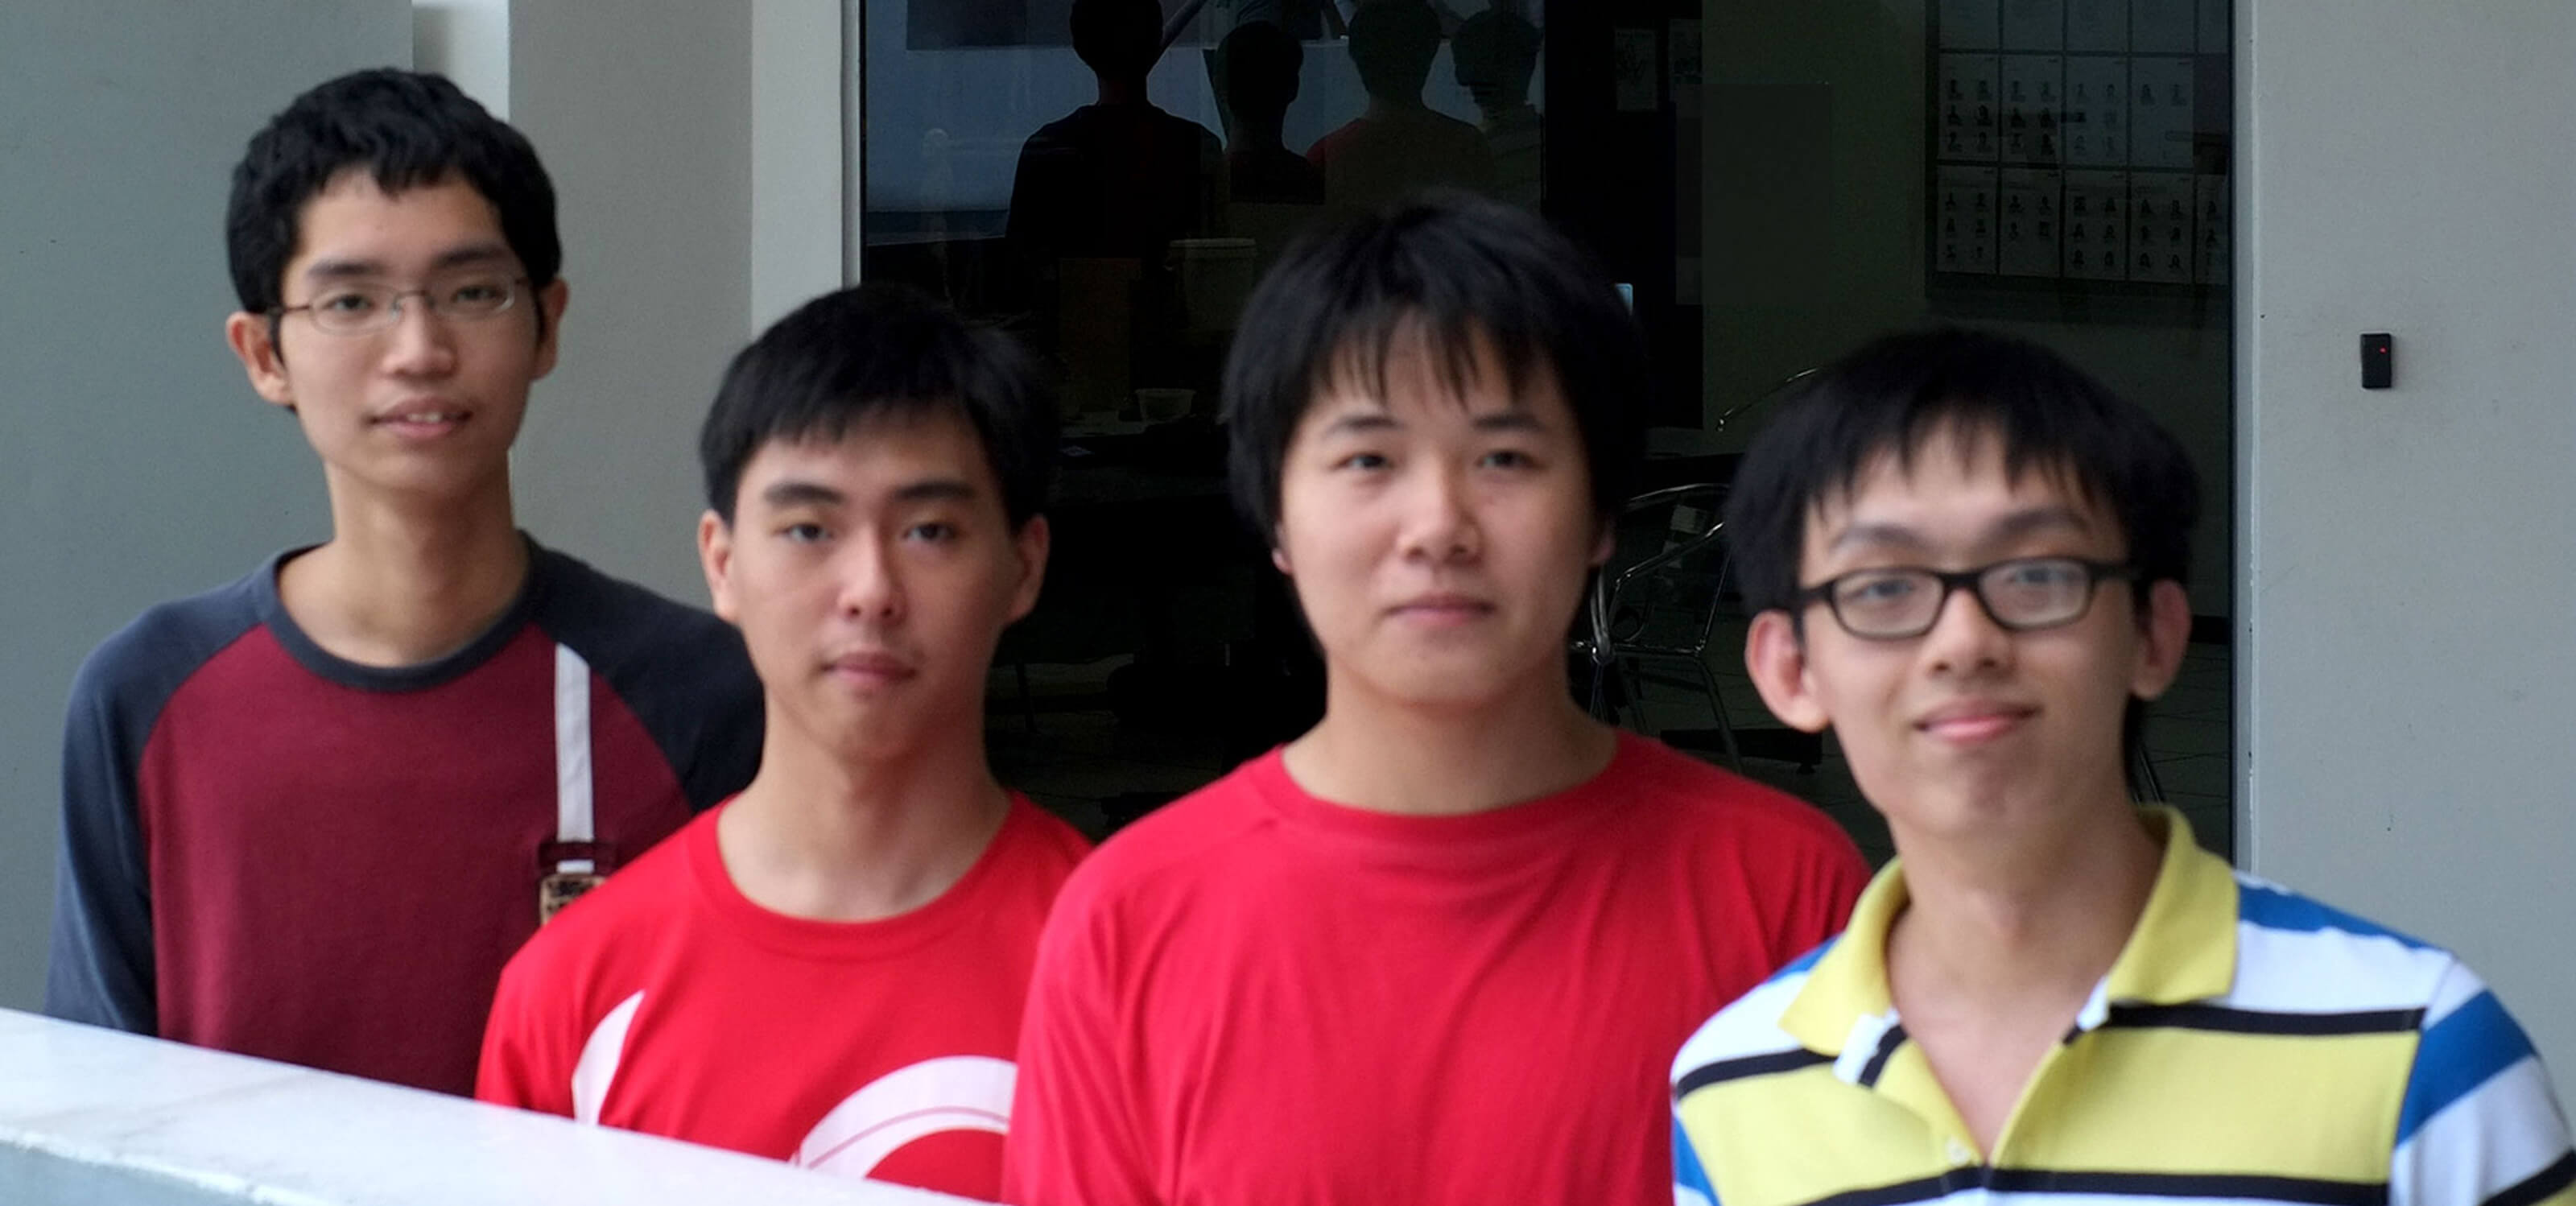 Four students pose for a photo behind a railing with an entrance to DigiPen (Singapore) behind them